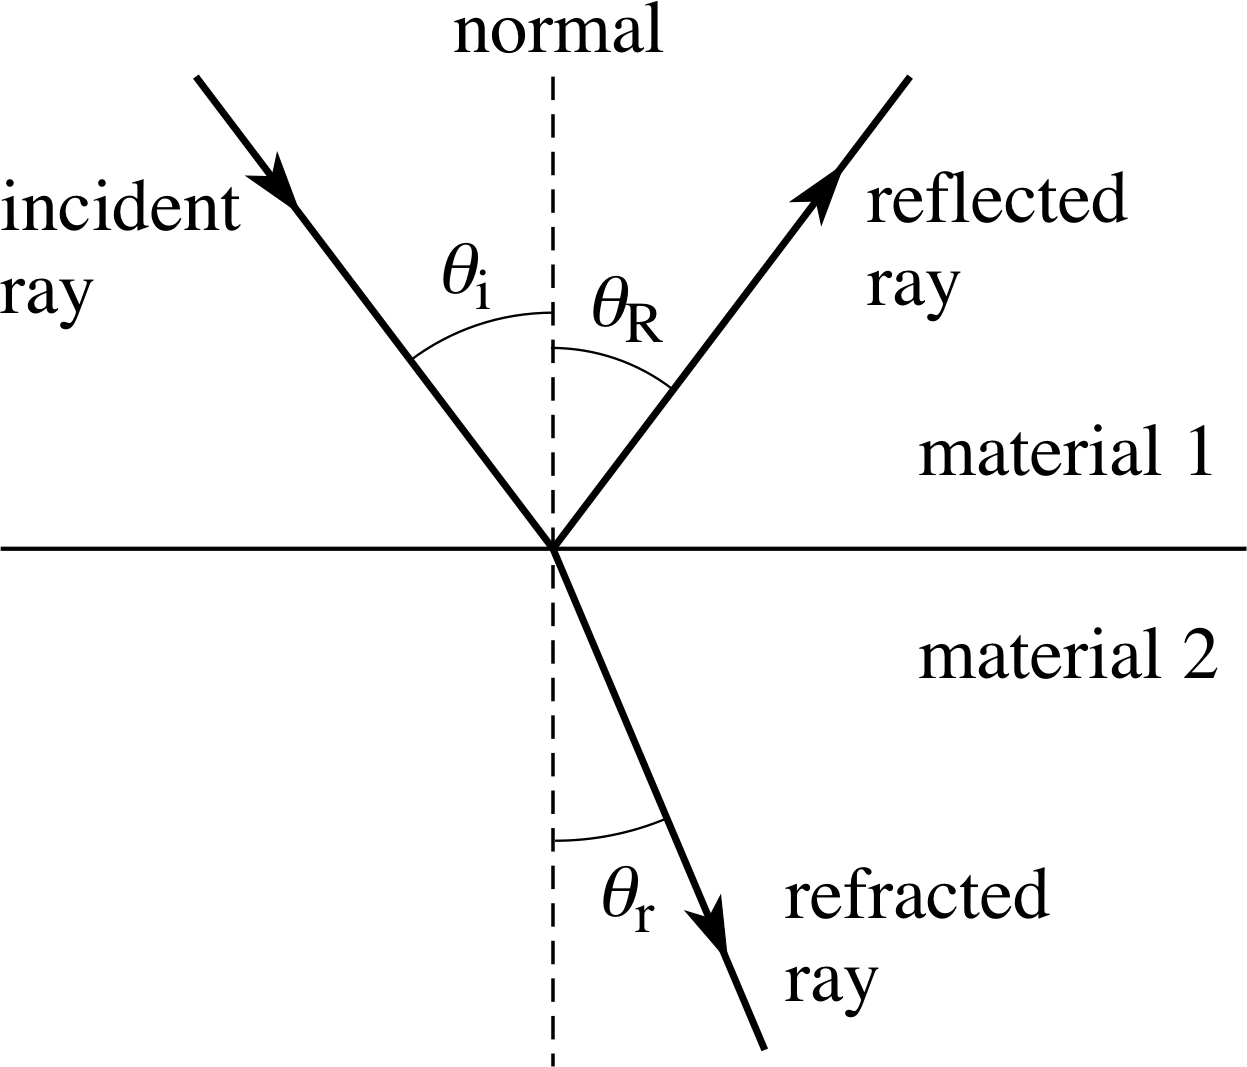 the laws of refraction Snell's law relates the indices of refraction n of the two media to the directions of propagation in terms of the angles to the normal snell's law can be derived from fermat's principle or from the fresnel equations enter data below.